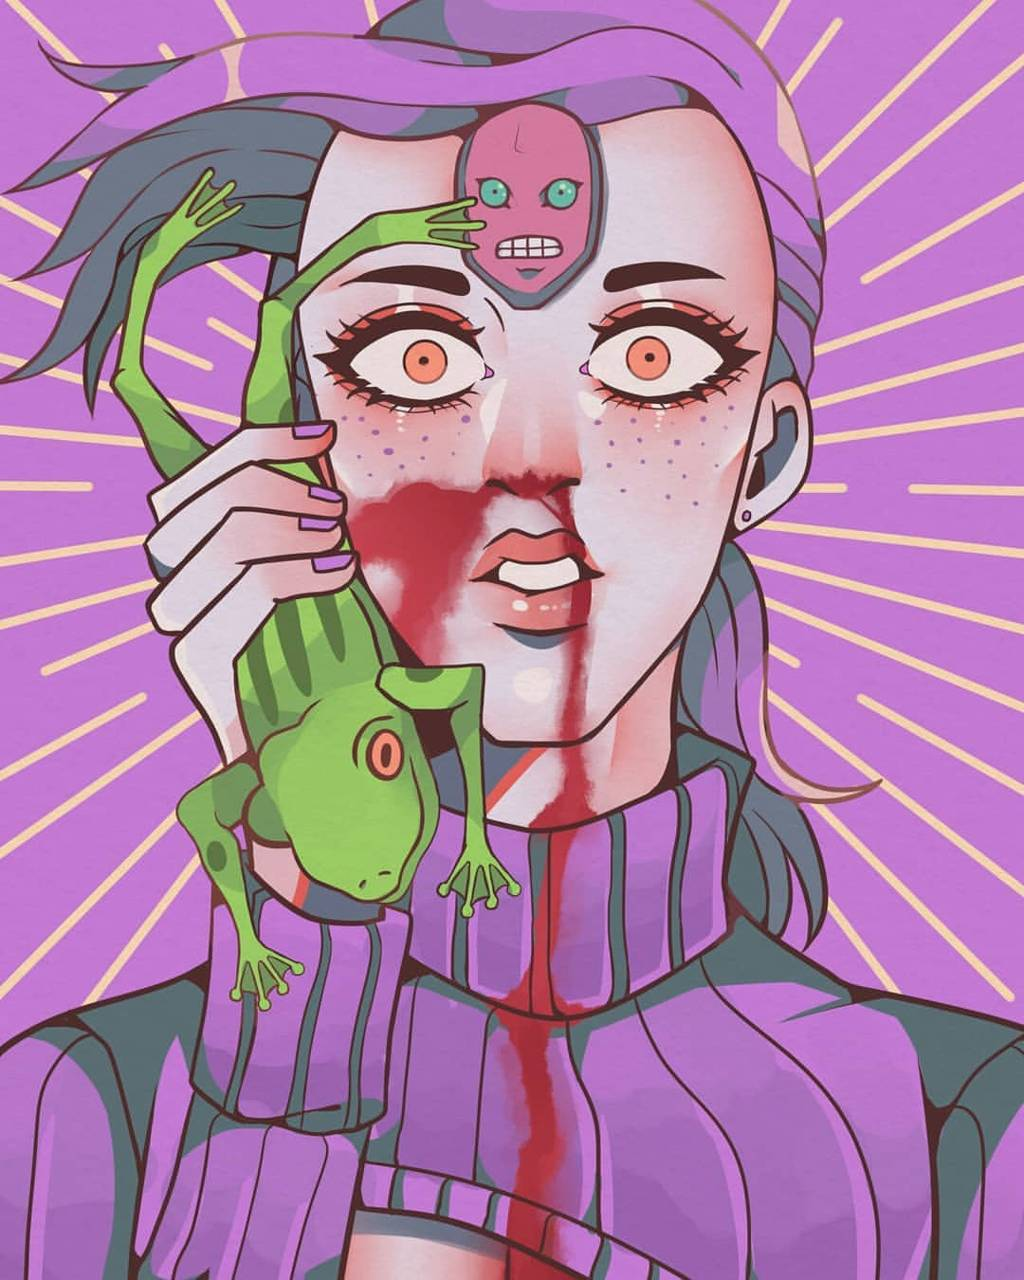 Doppio with a frog Wallpaper by Femboi_Carti - 07 - Free on